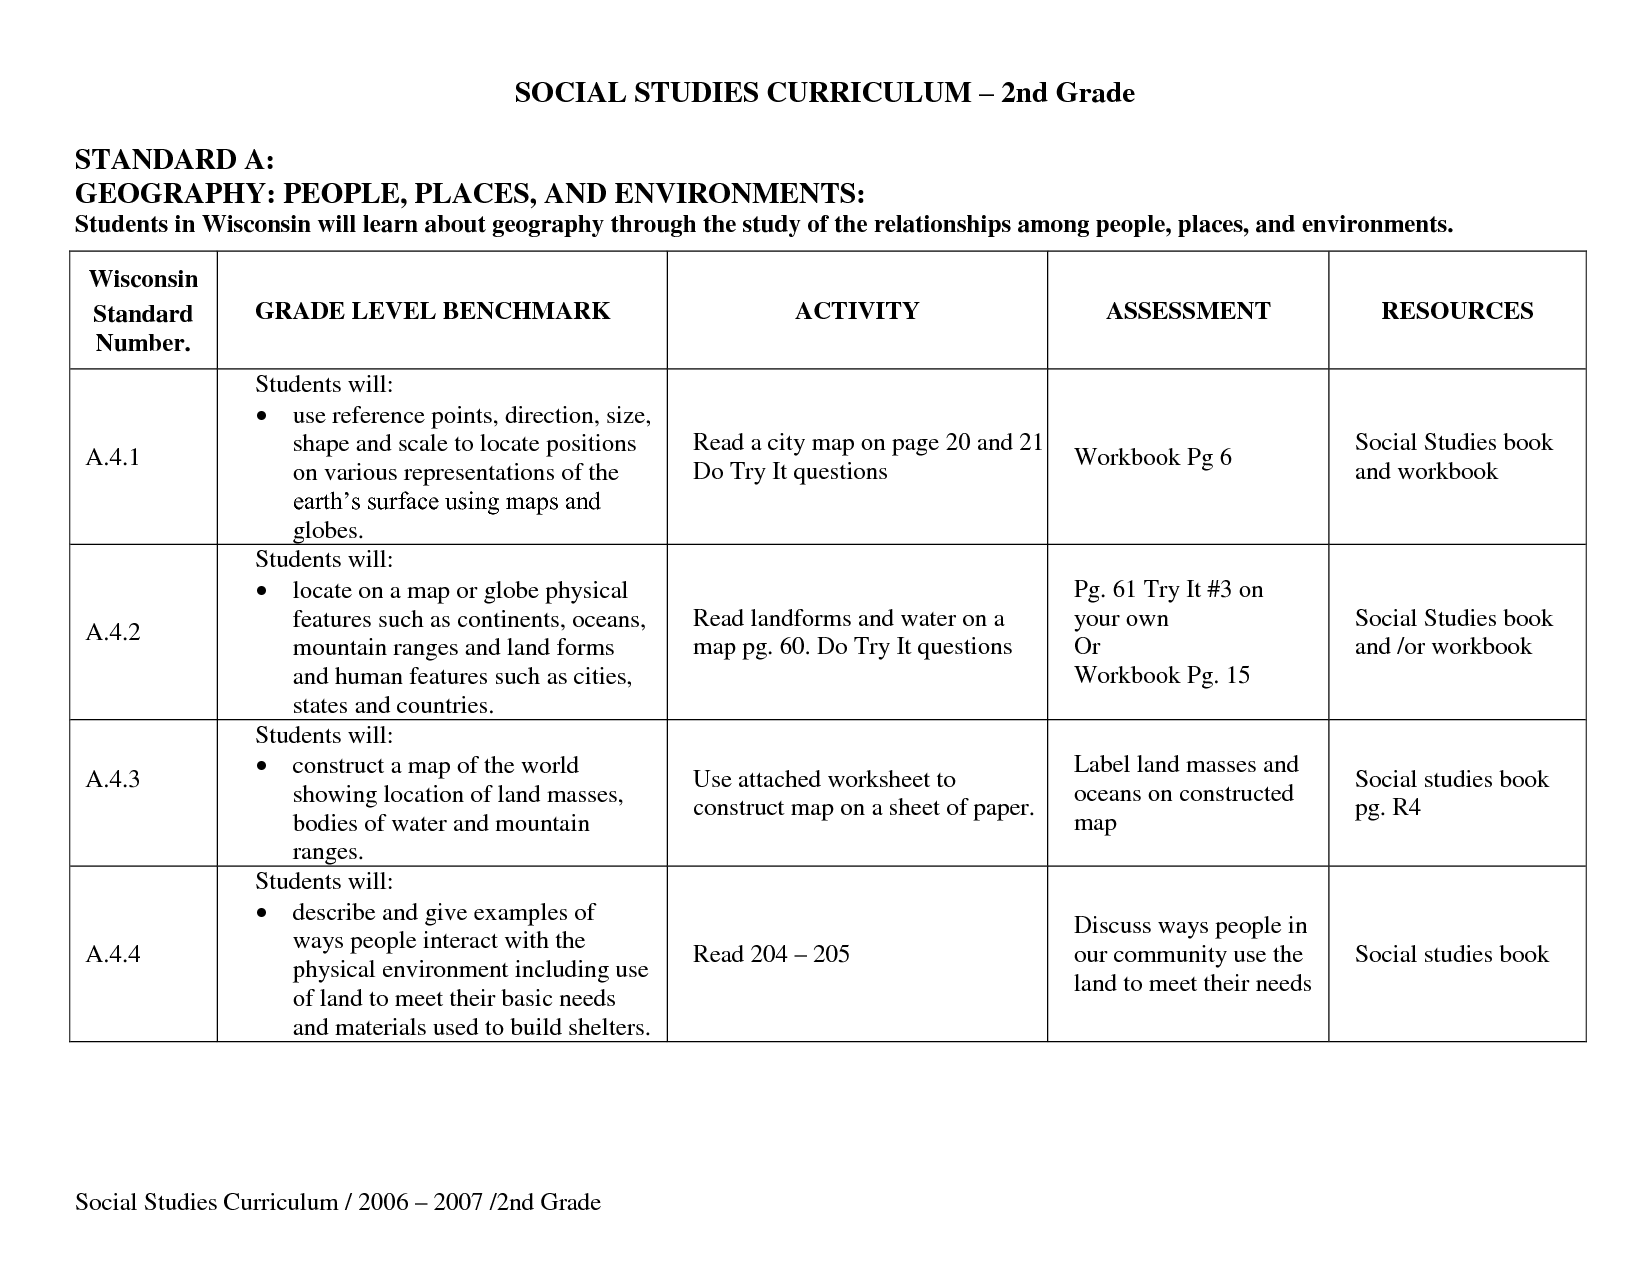 Social Studies Worksheets For 3rd Graders : Free printable social studies worksheets for first graders